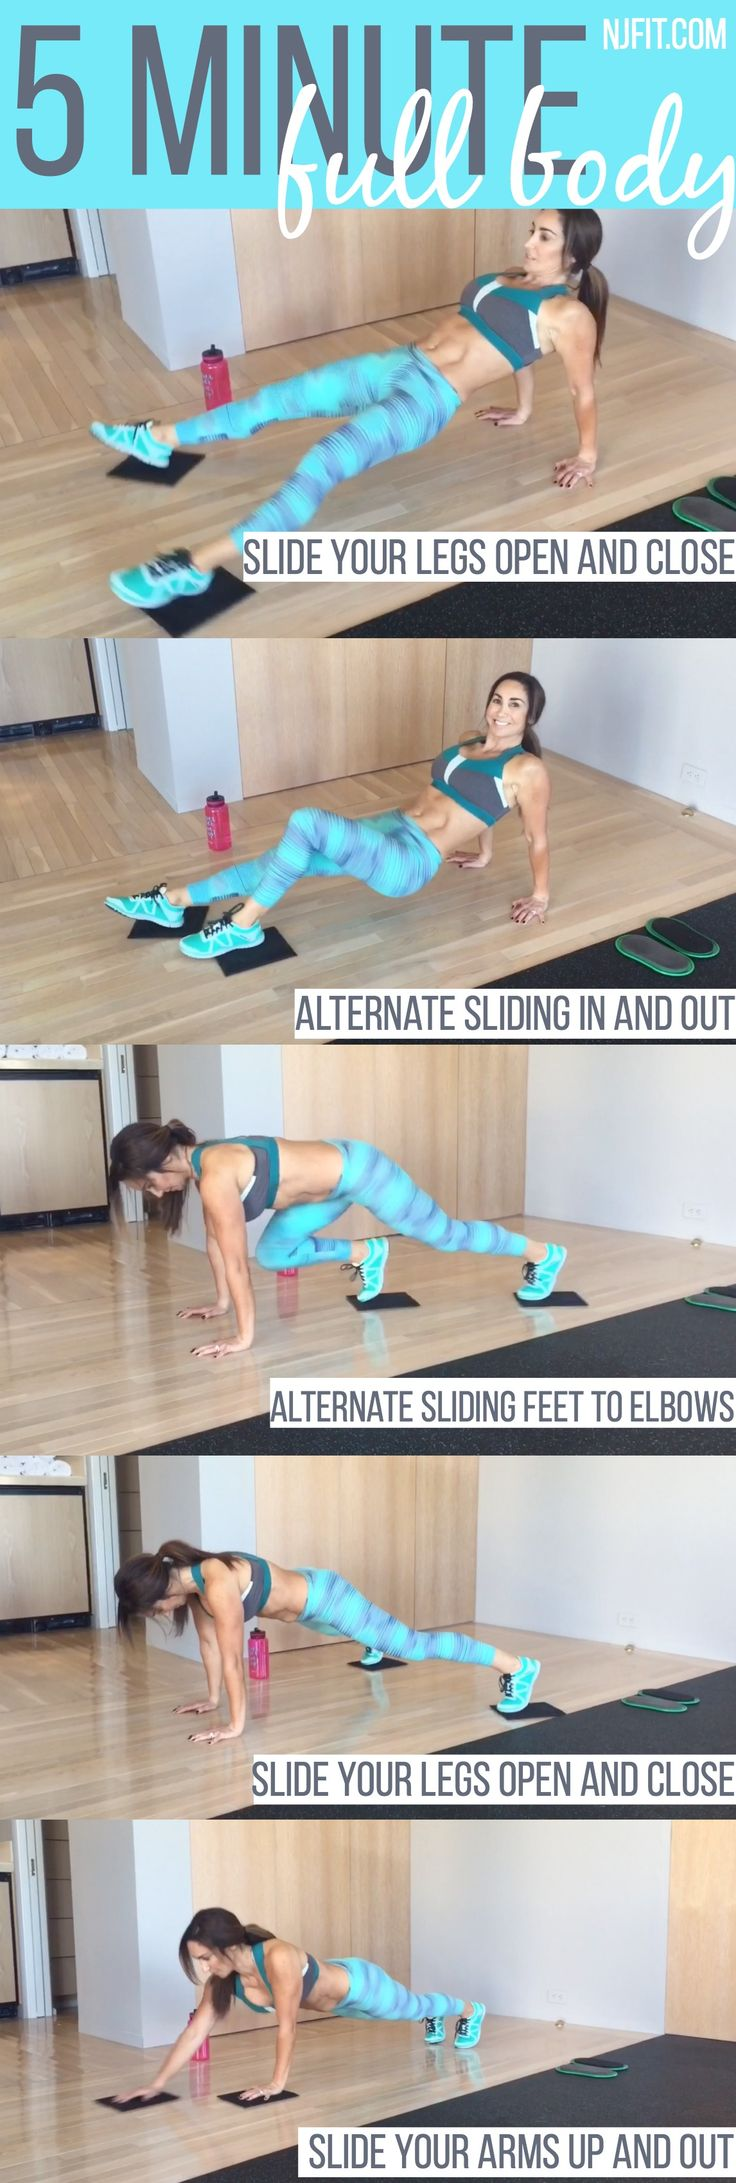 5 minute full body workout! ARE YOU IN? For this workout you will want to use sliders OR you can use a towel on a hard surface OR plates on carpet. Here is the plan From a reverse bridge hold slide your legs open and close From that same position, alterna